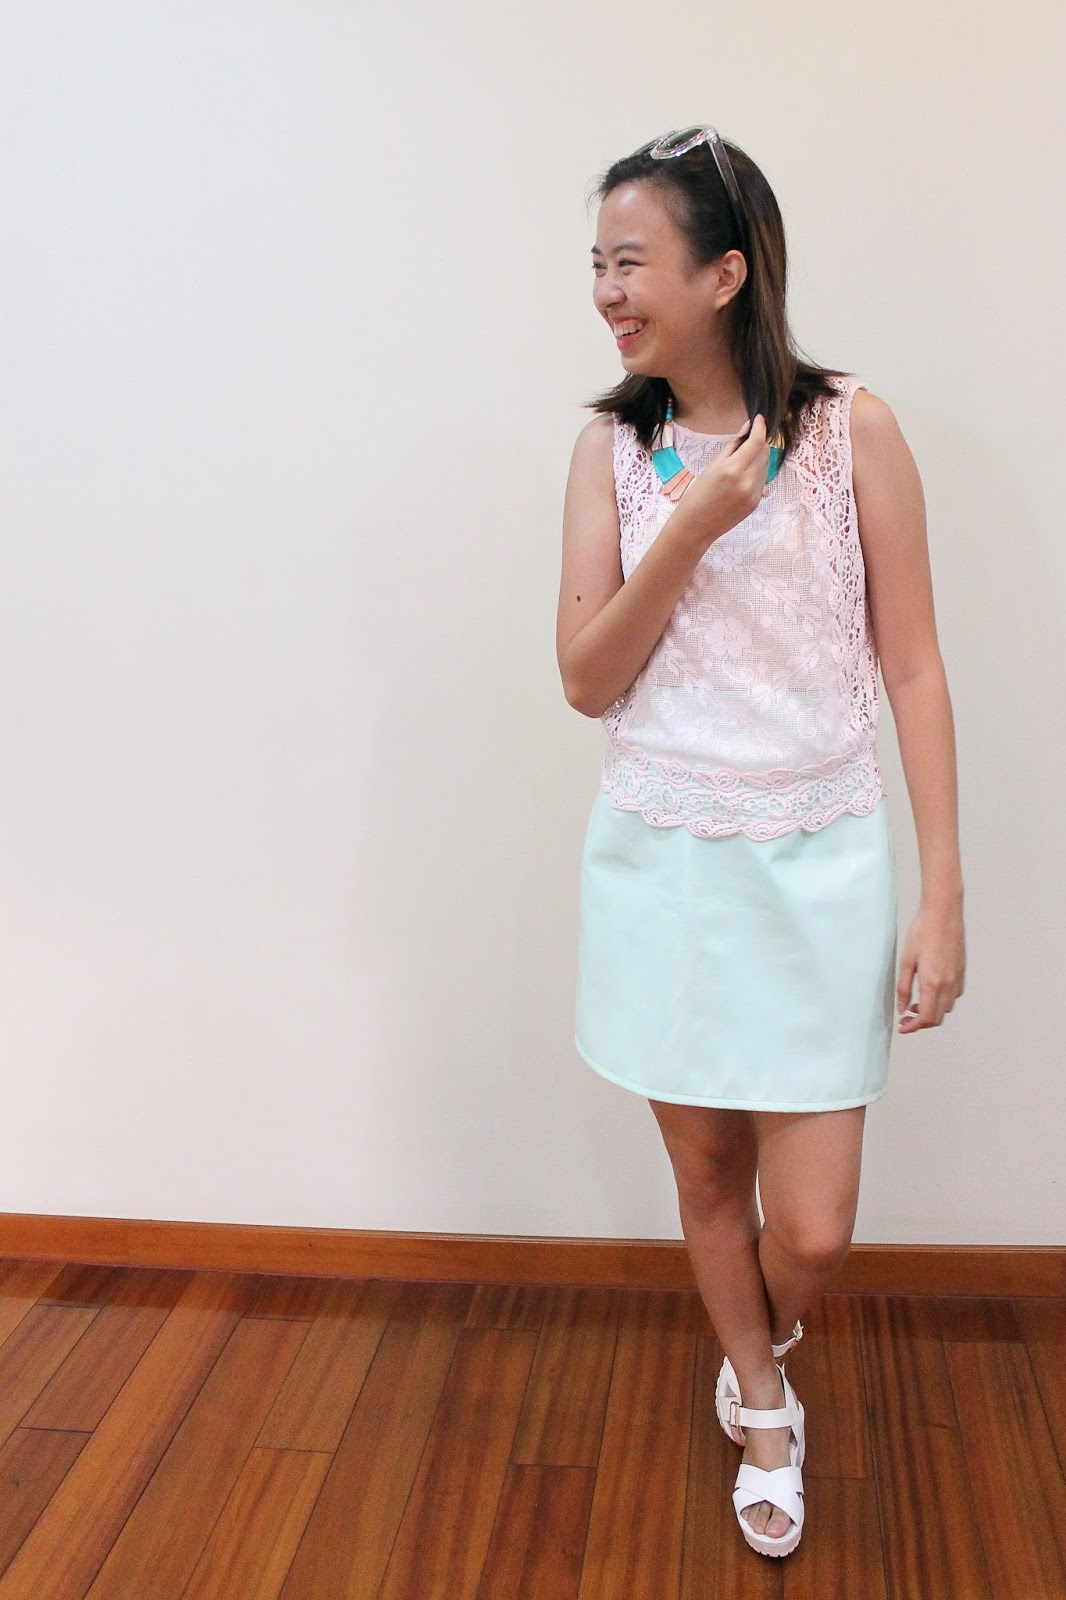 Fashion: Sweet Tooth (pastels)